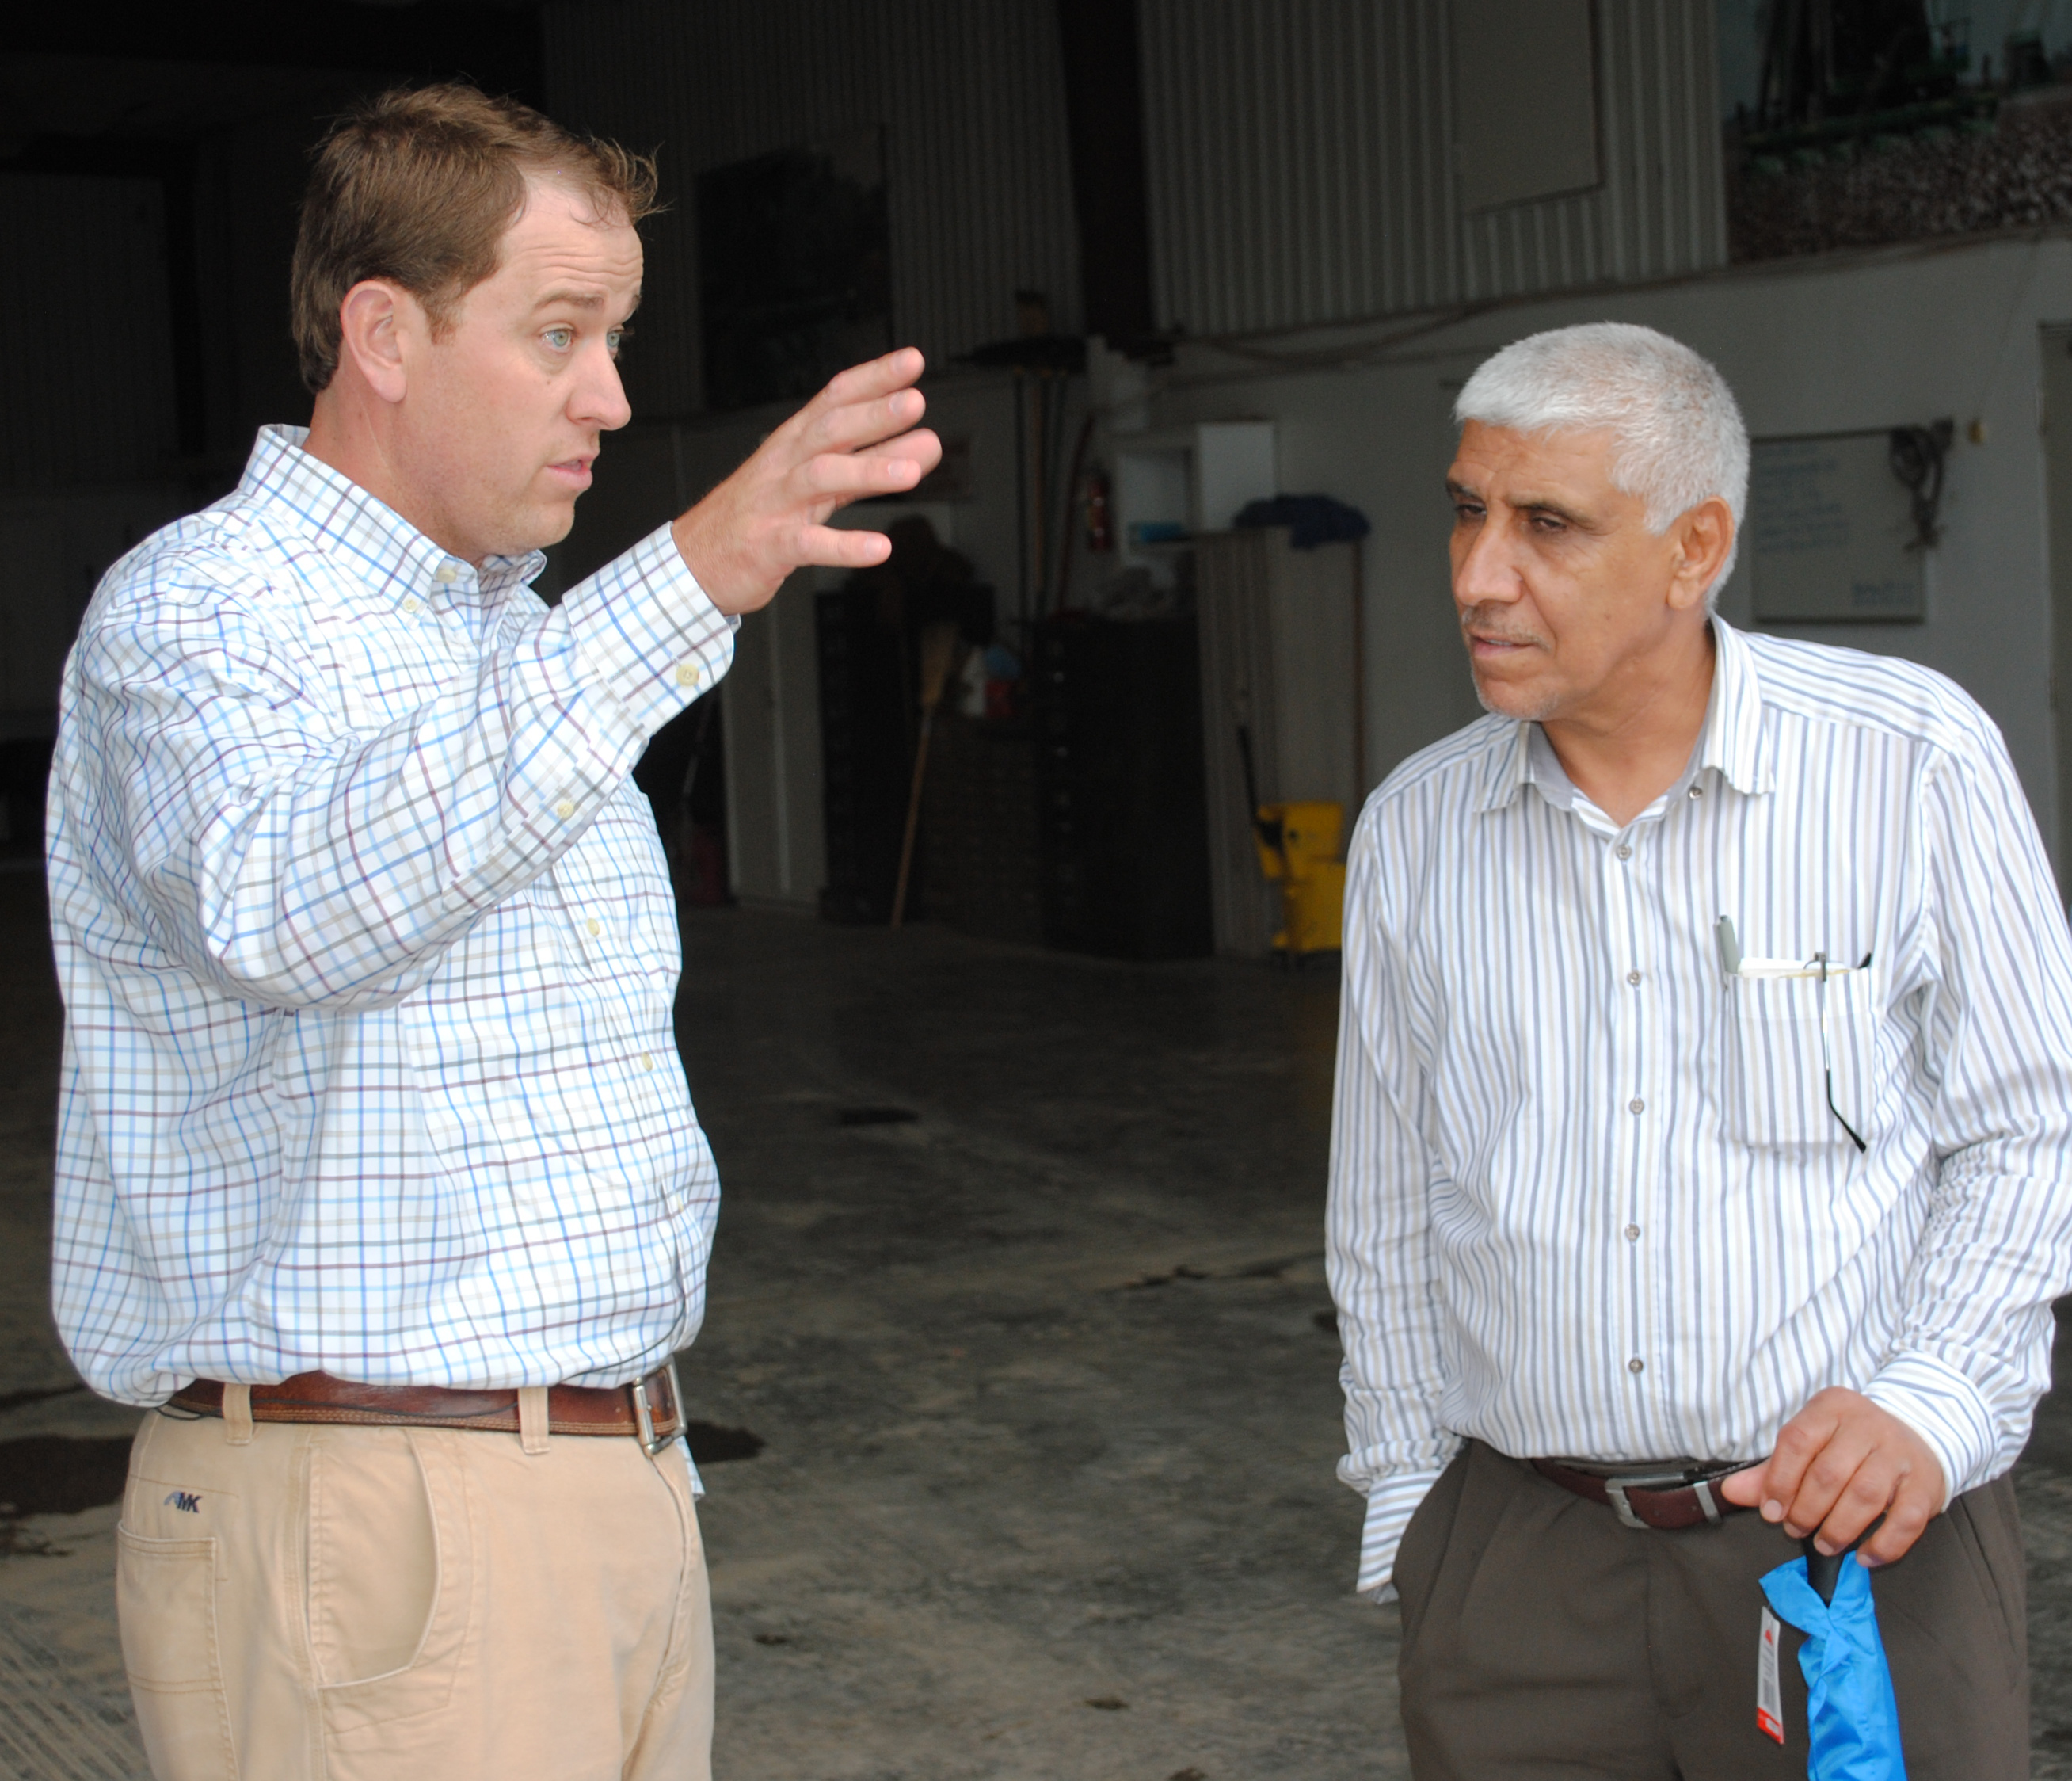 Two men wearing long-sleeved button-down shirts meet inside an equipment shed, one on the left gesturing with one hand, one on the right listens intently